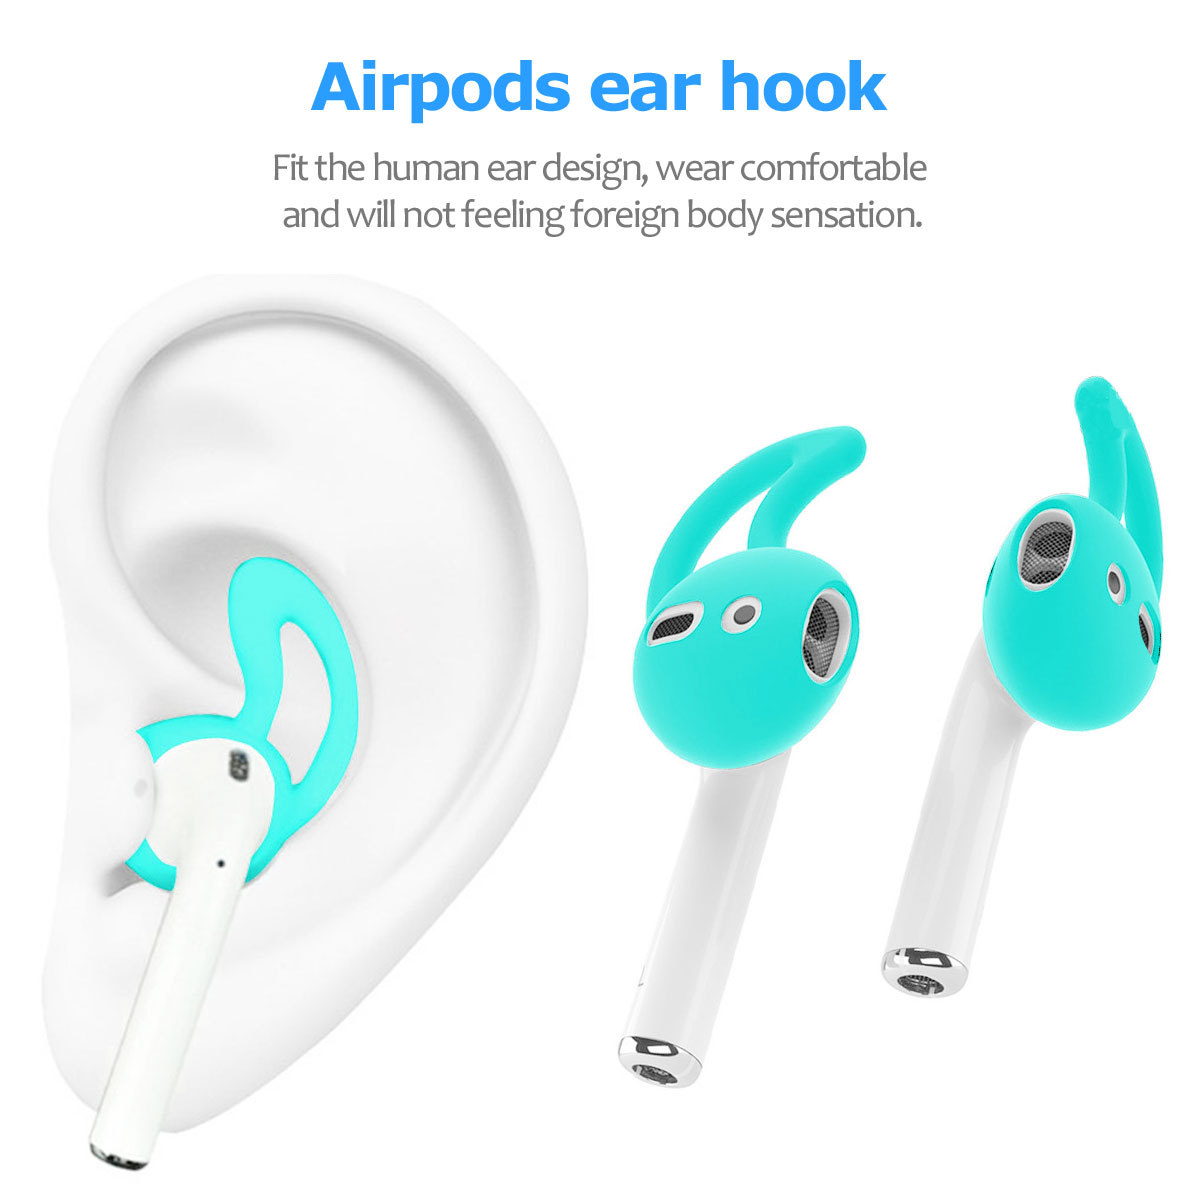 Silicone-Ruggged-Case-Cover-Earbuds-For-Apple-AirPods-2nd-Gen-Accessories-2019 thumbnail 47